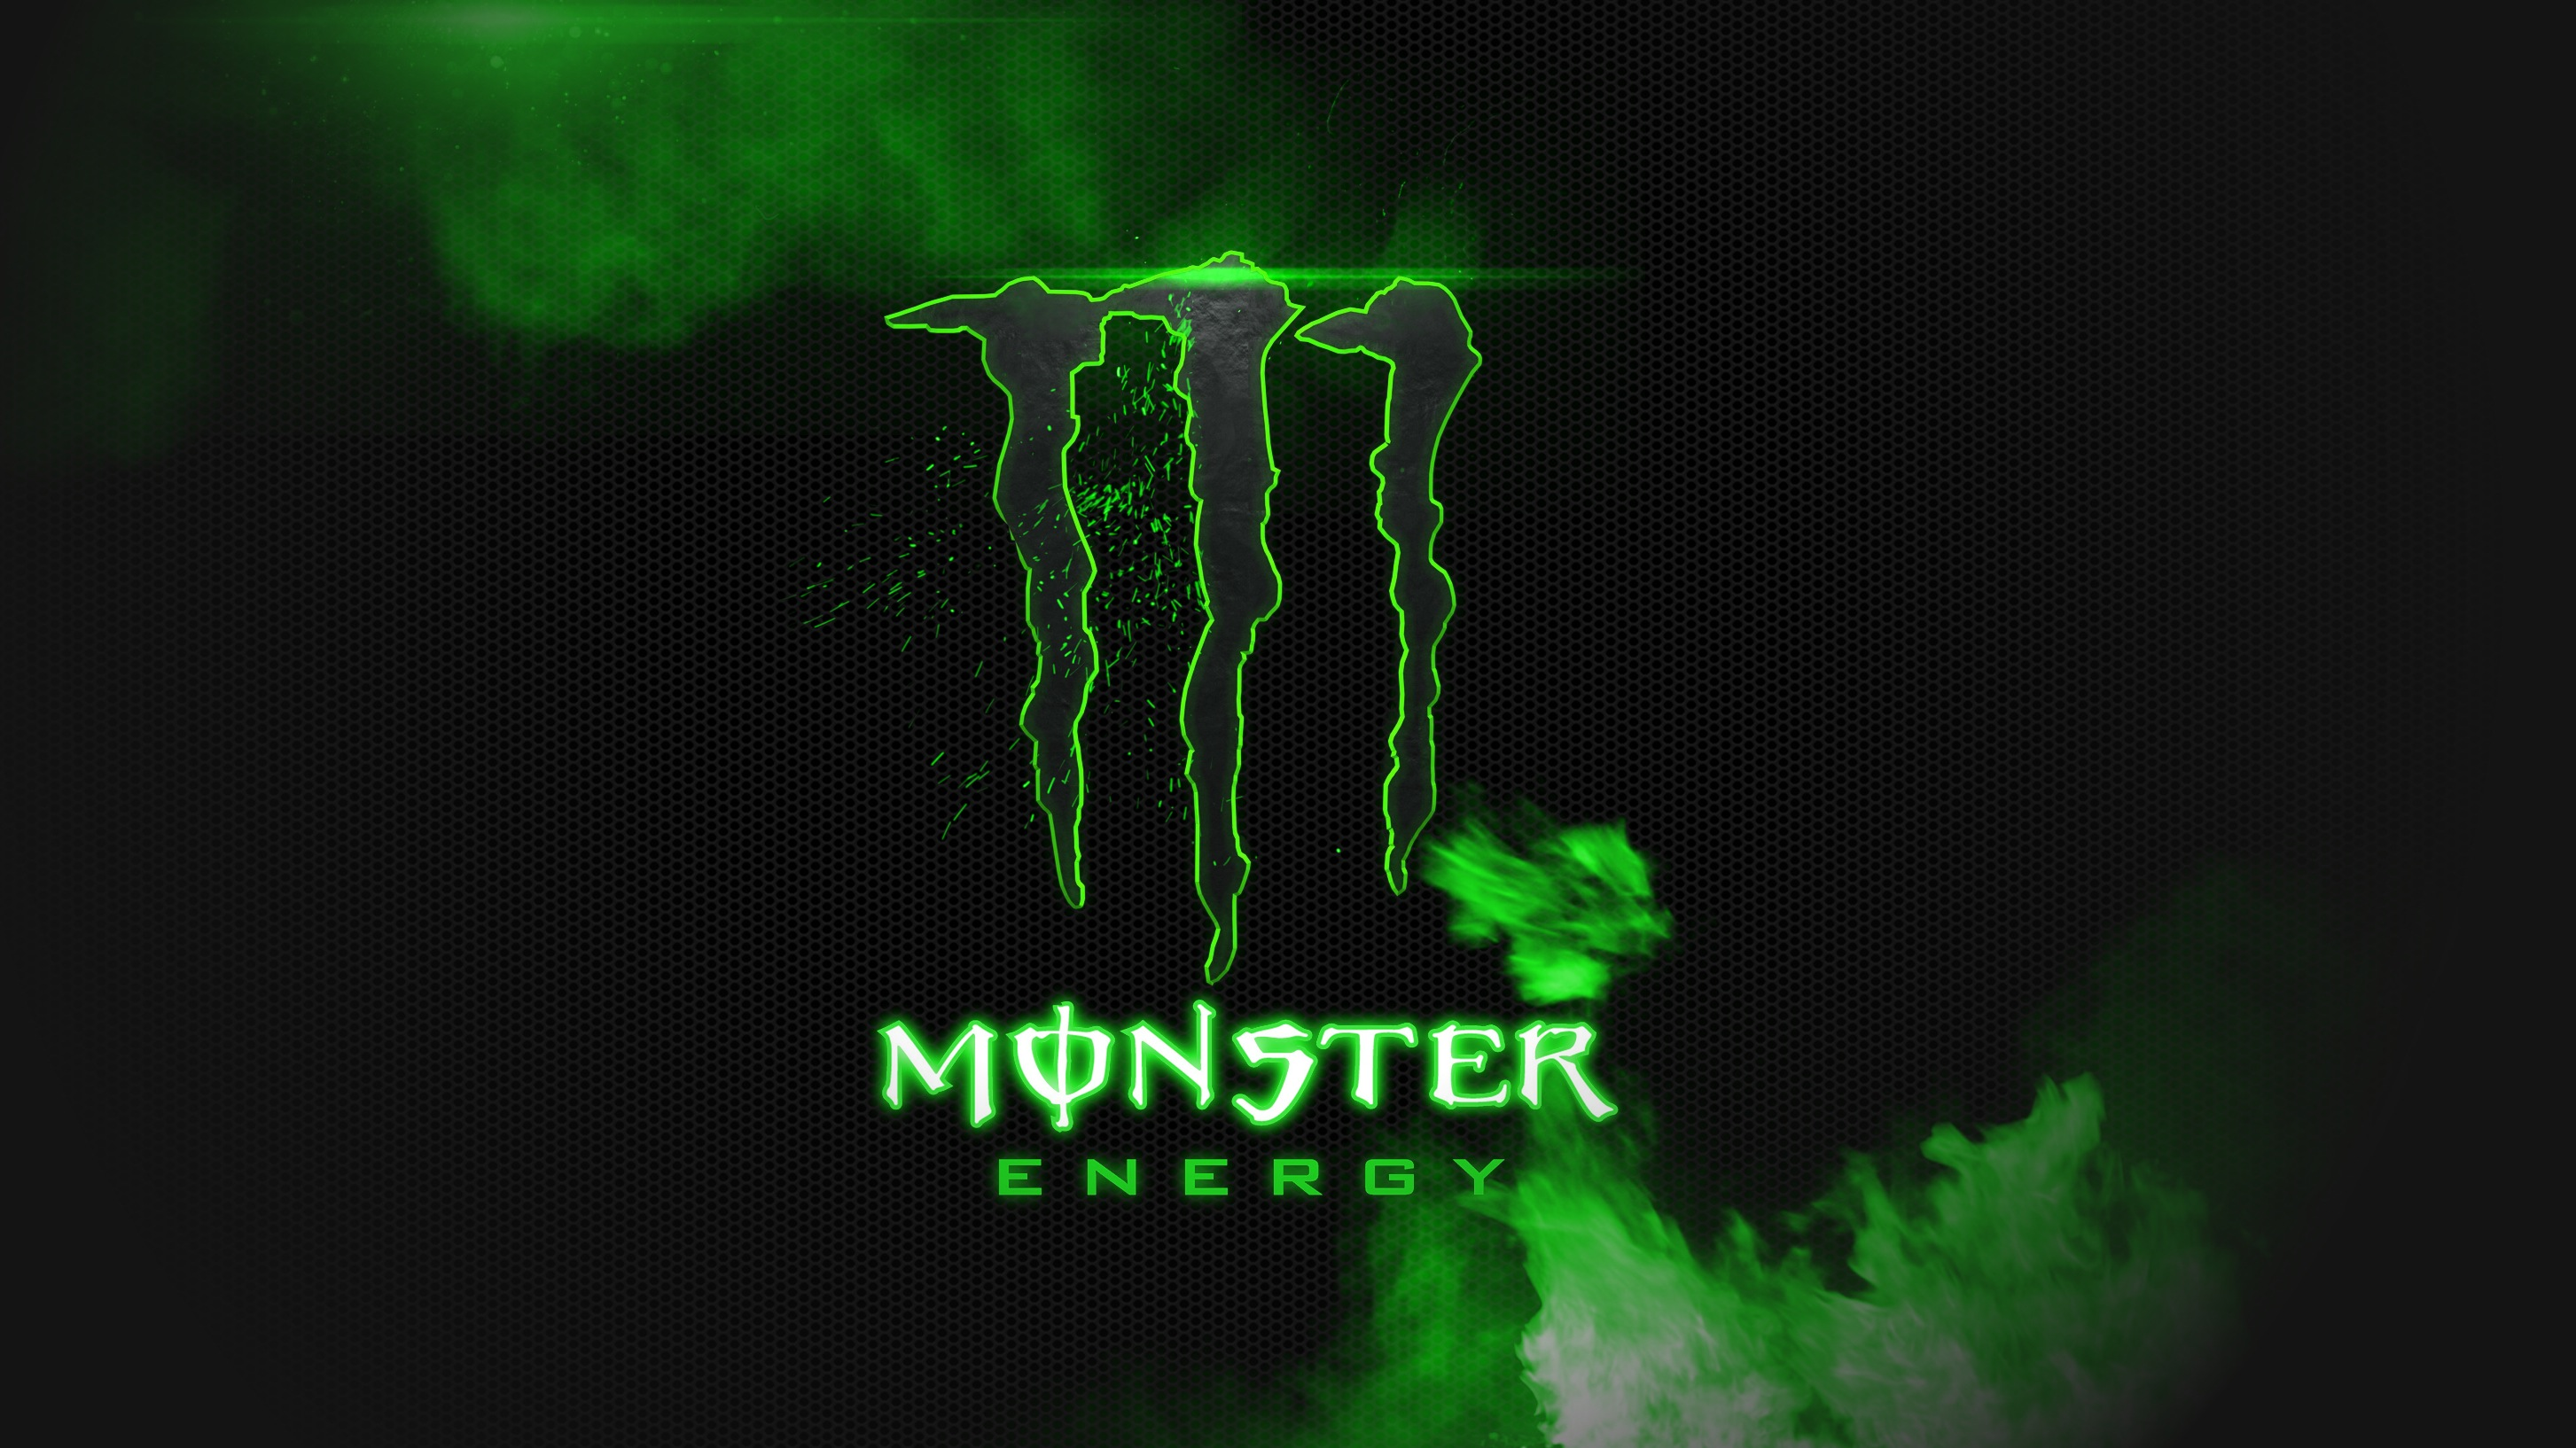 Cool Monster Energy Pics Hd Wallpaper 8 Desktop 2906x1634